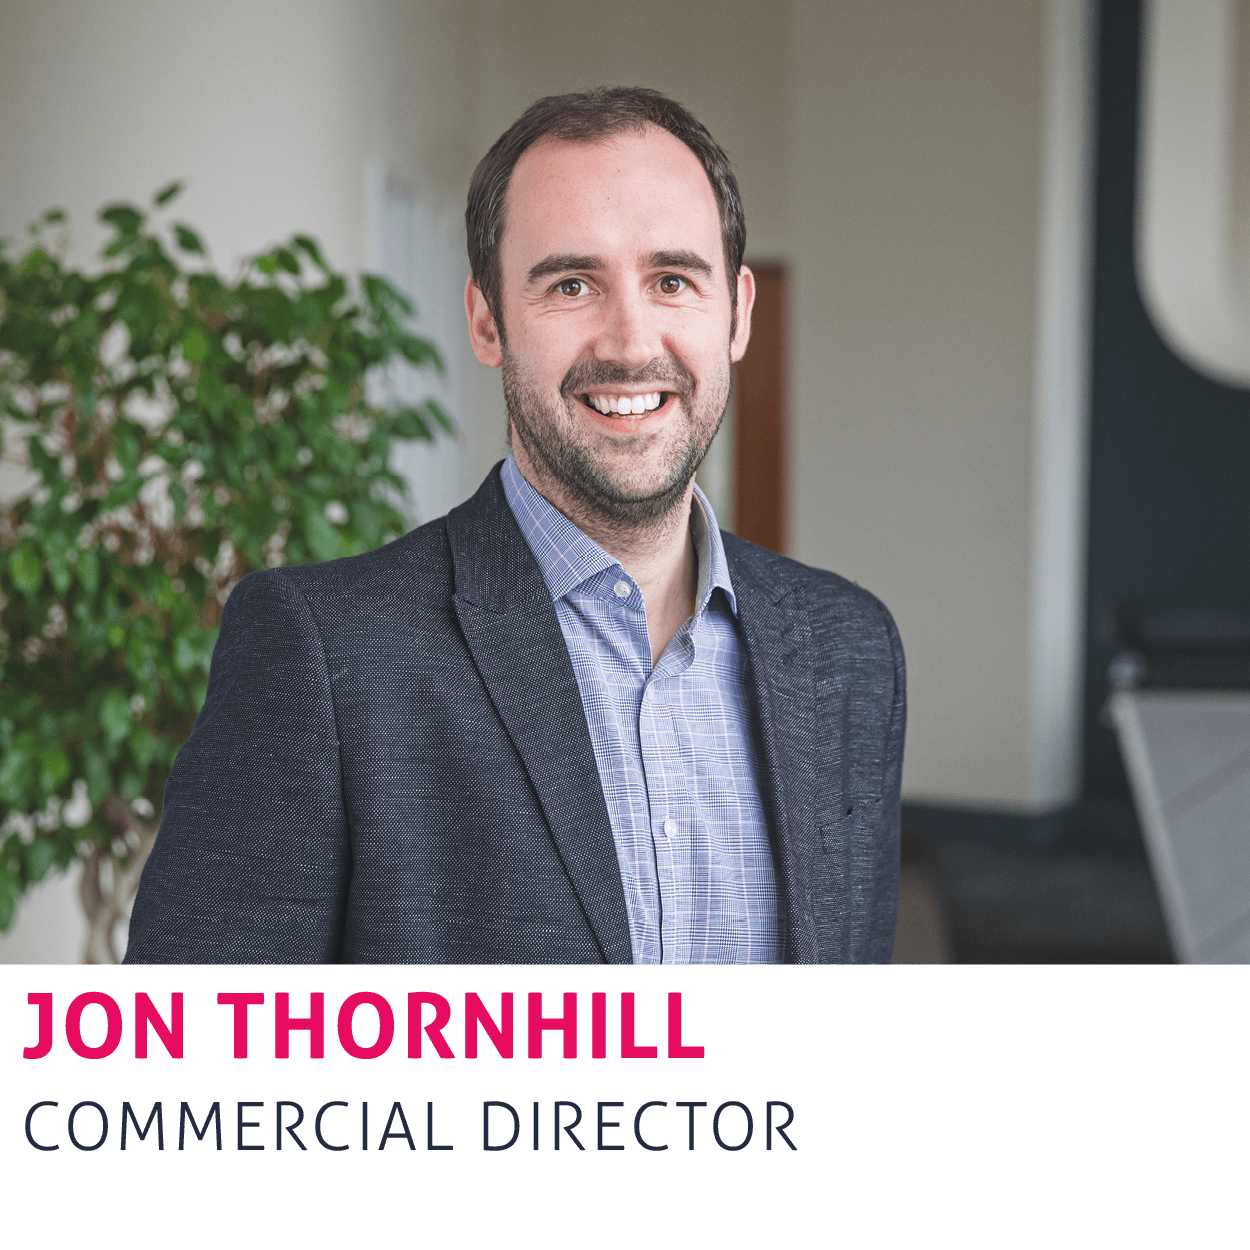 Jon Thornhill, Commercial Director